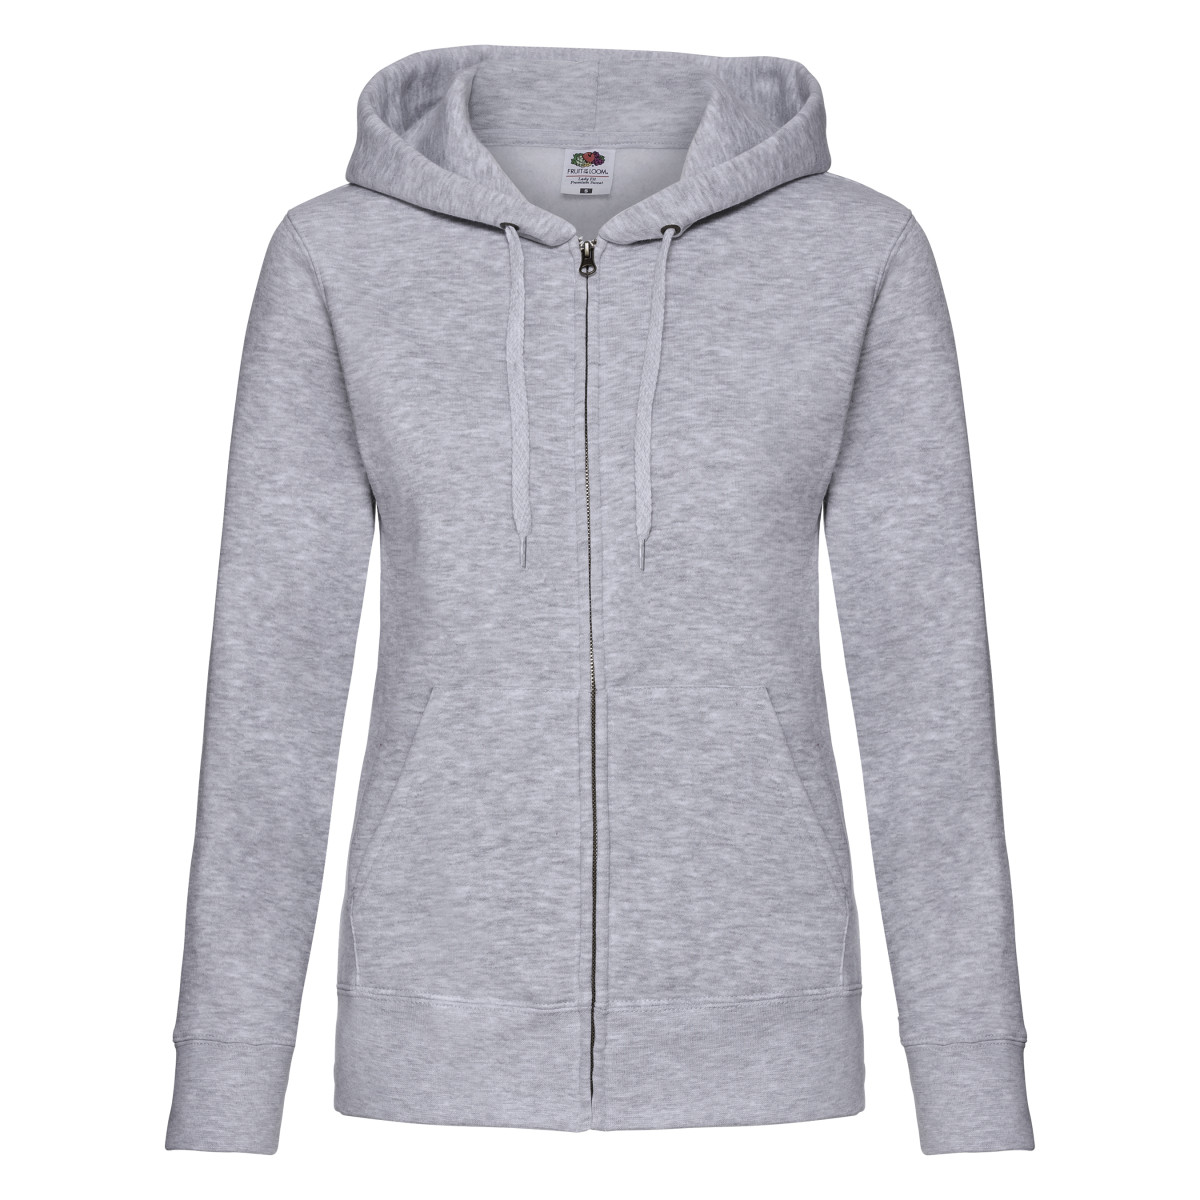 Lady-Fit Hooded Sweat Jacket